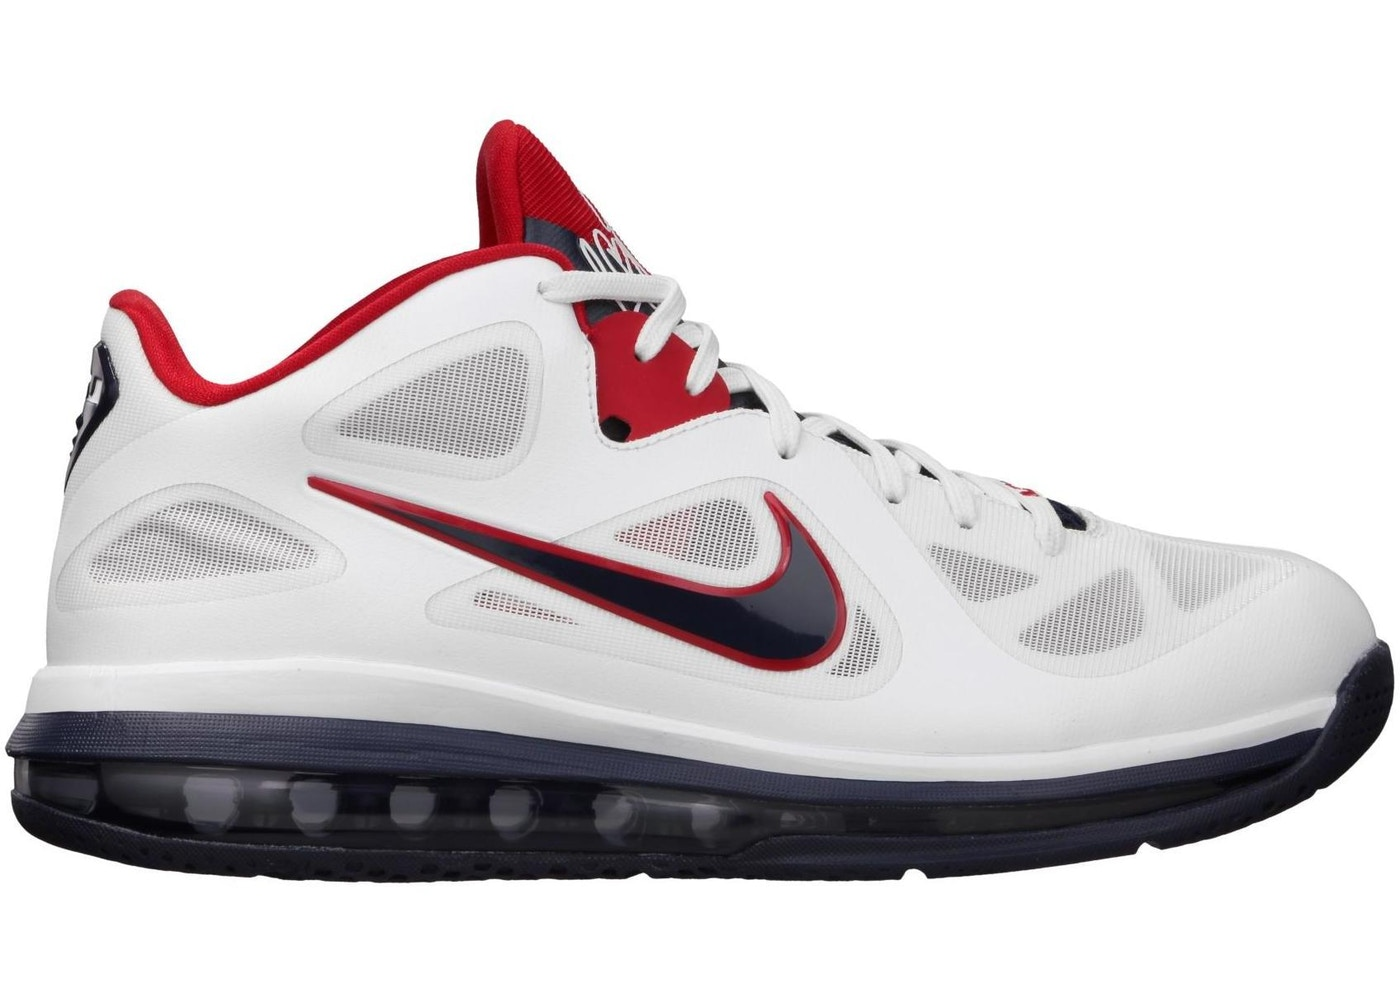 new style ba719 8c1f4 LeBron 9 Low USA Olympic